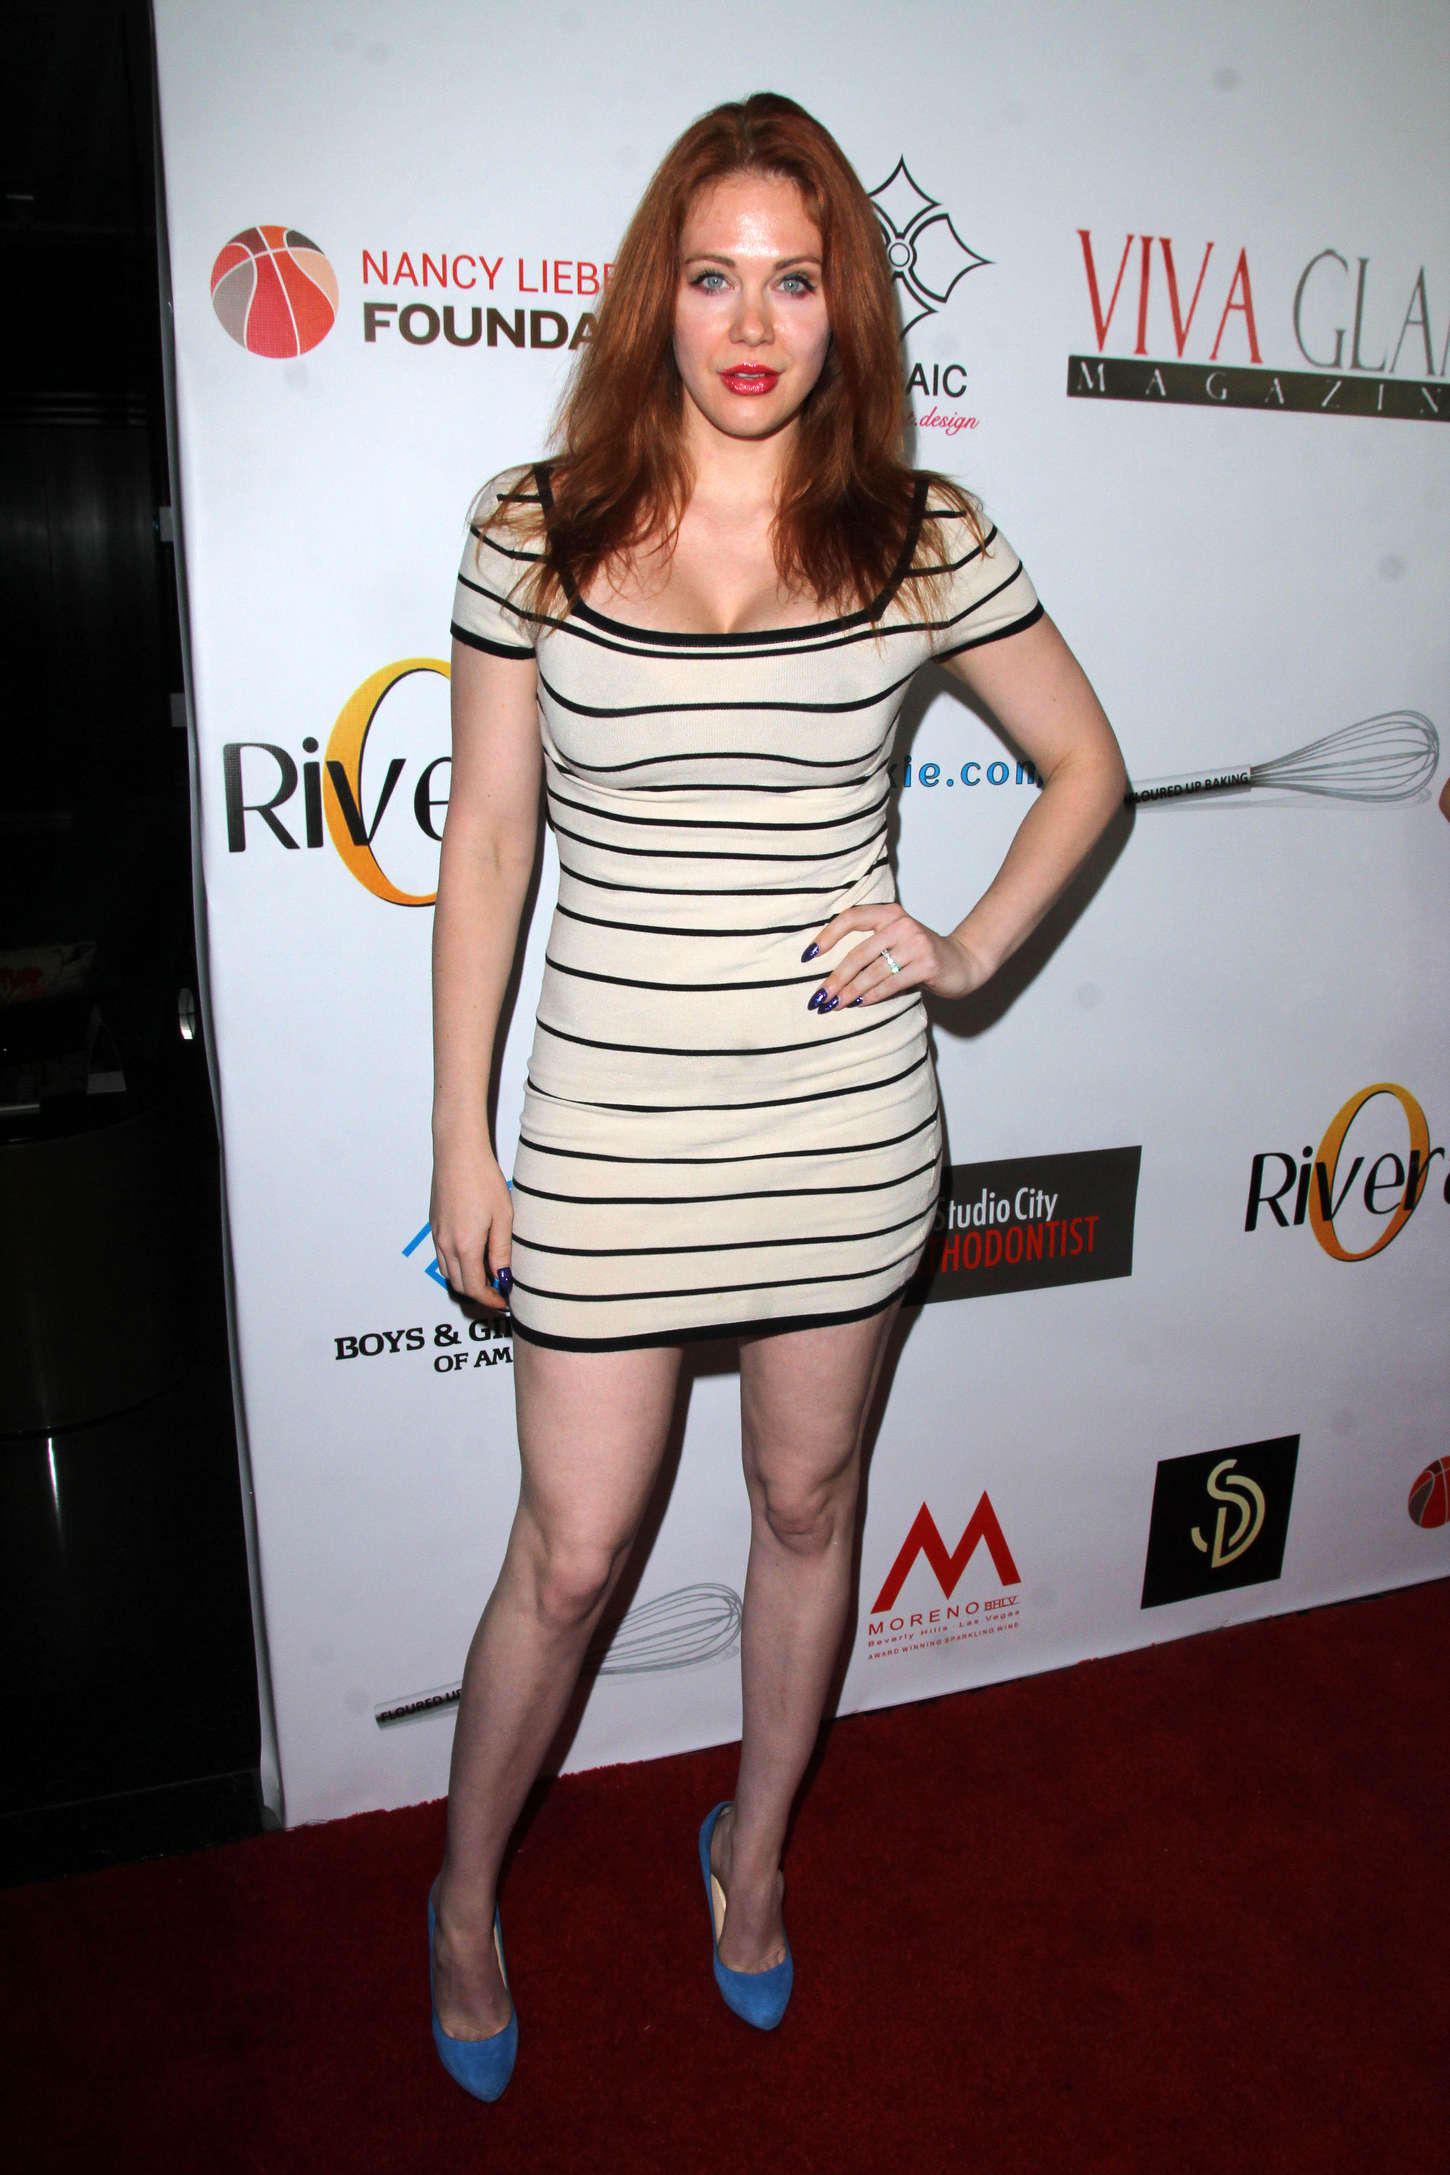 Maitland Ward 2015 : Maitland Ward: Viva Glam Magazine Celebrity Issue Party -10